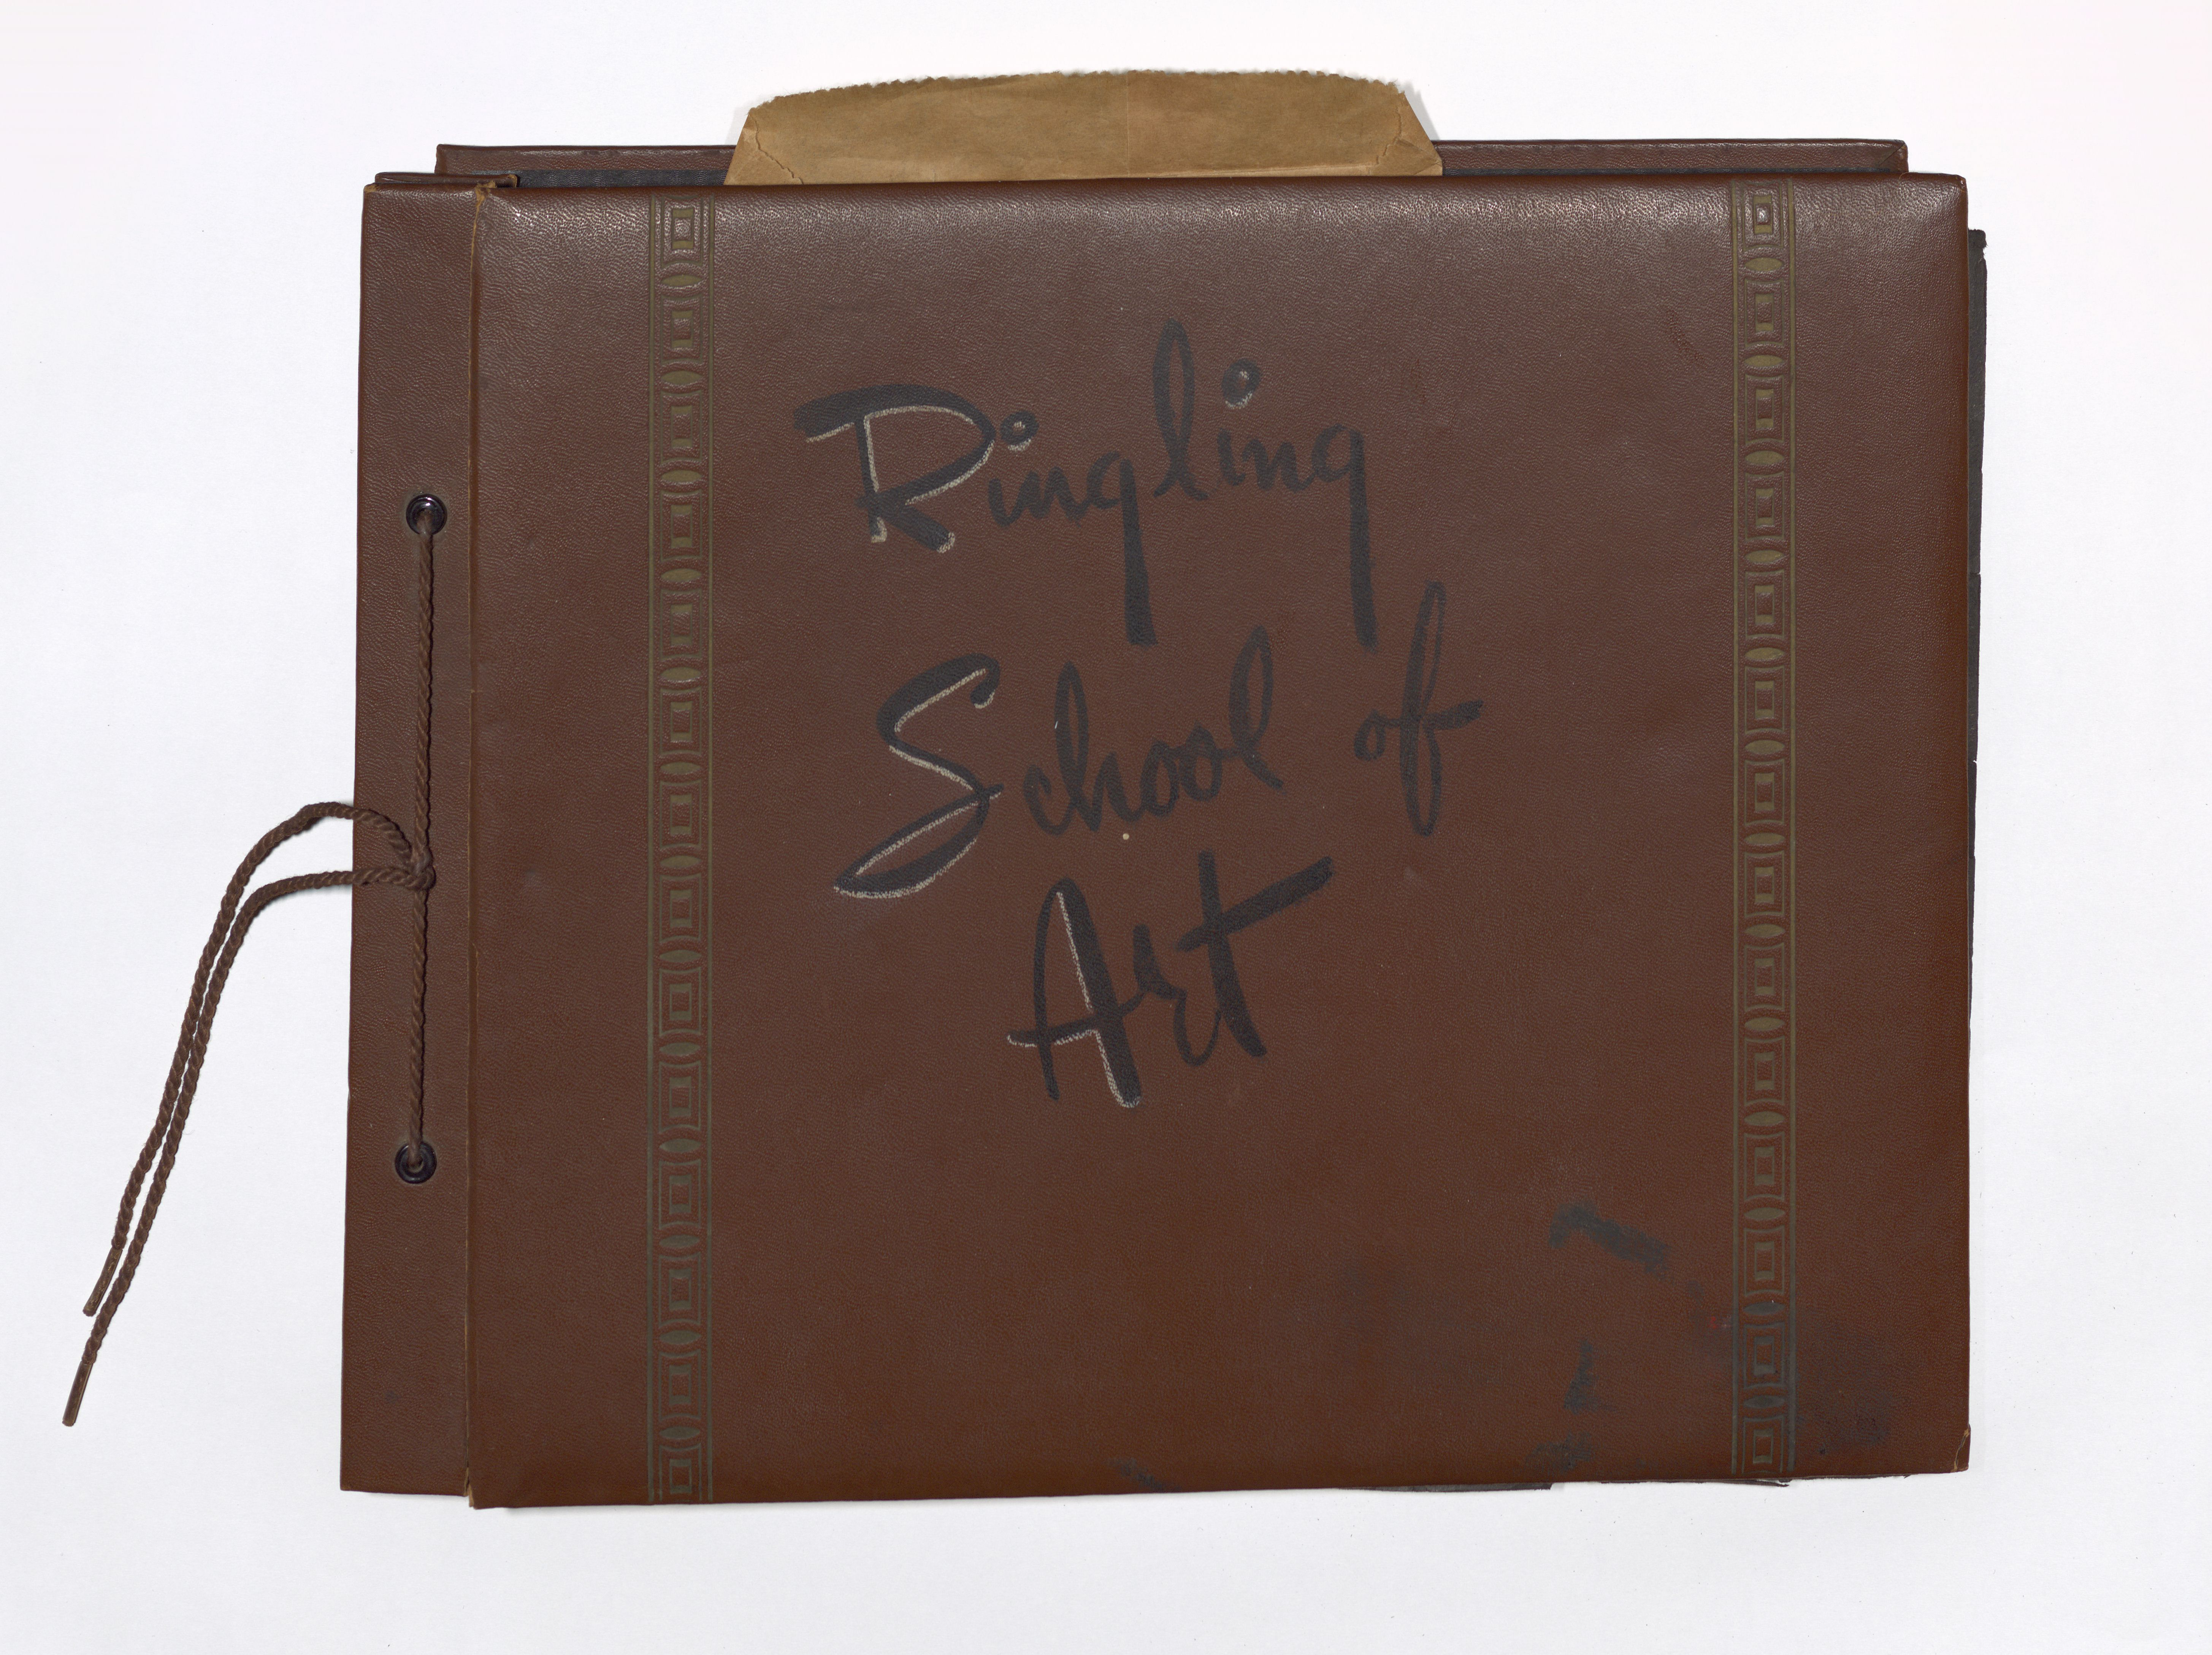 Cover image of Ringling School of Art photo album from 1951-53